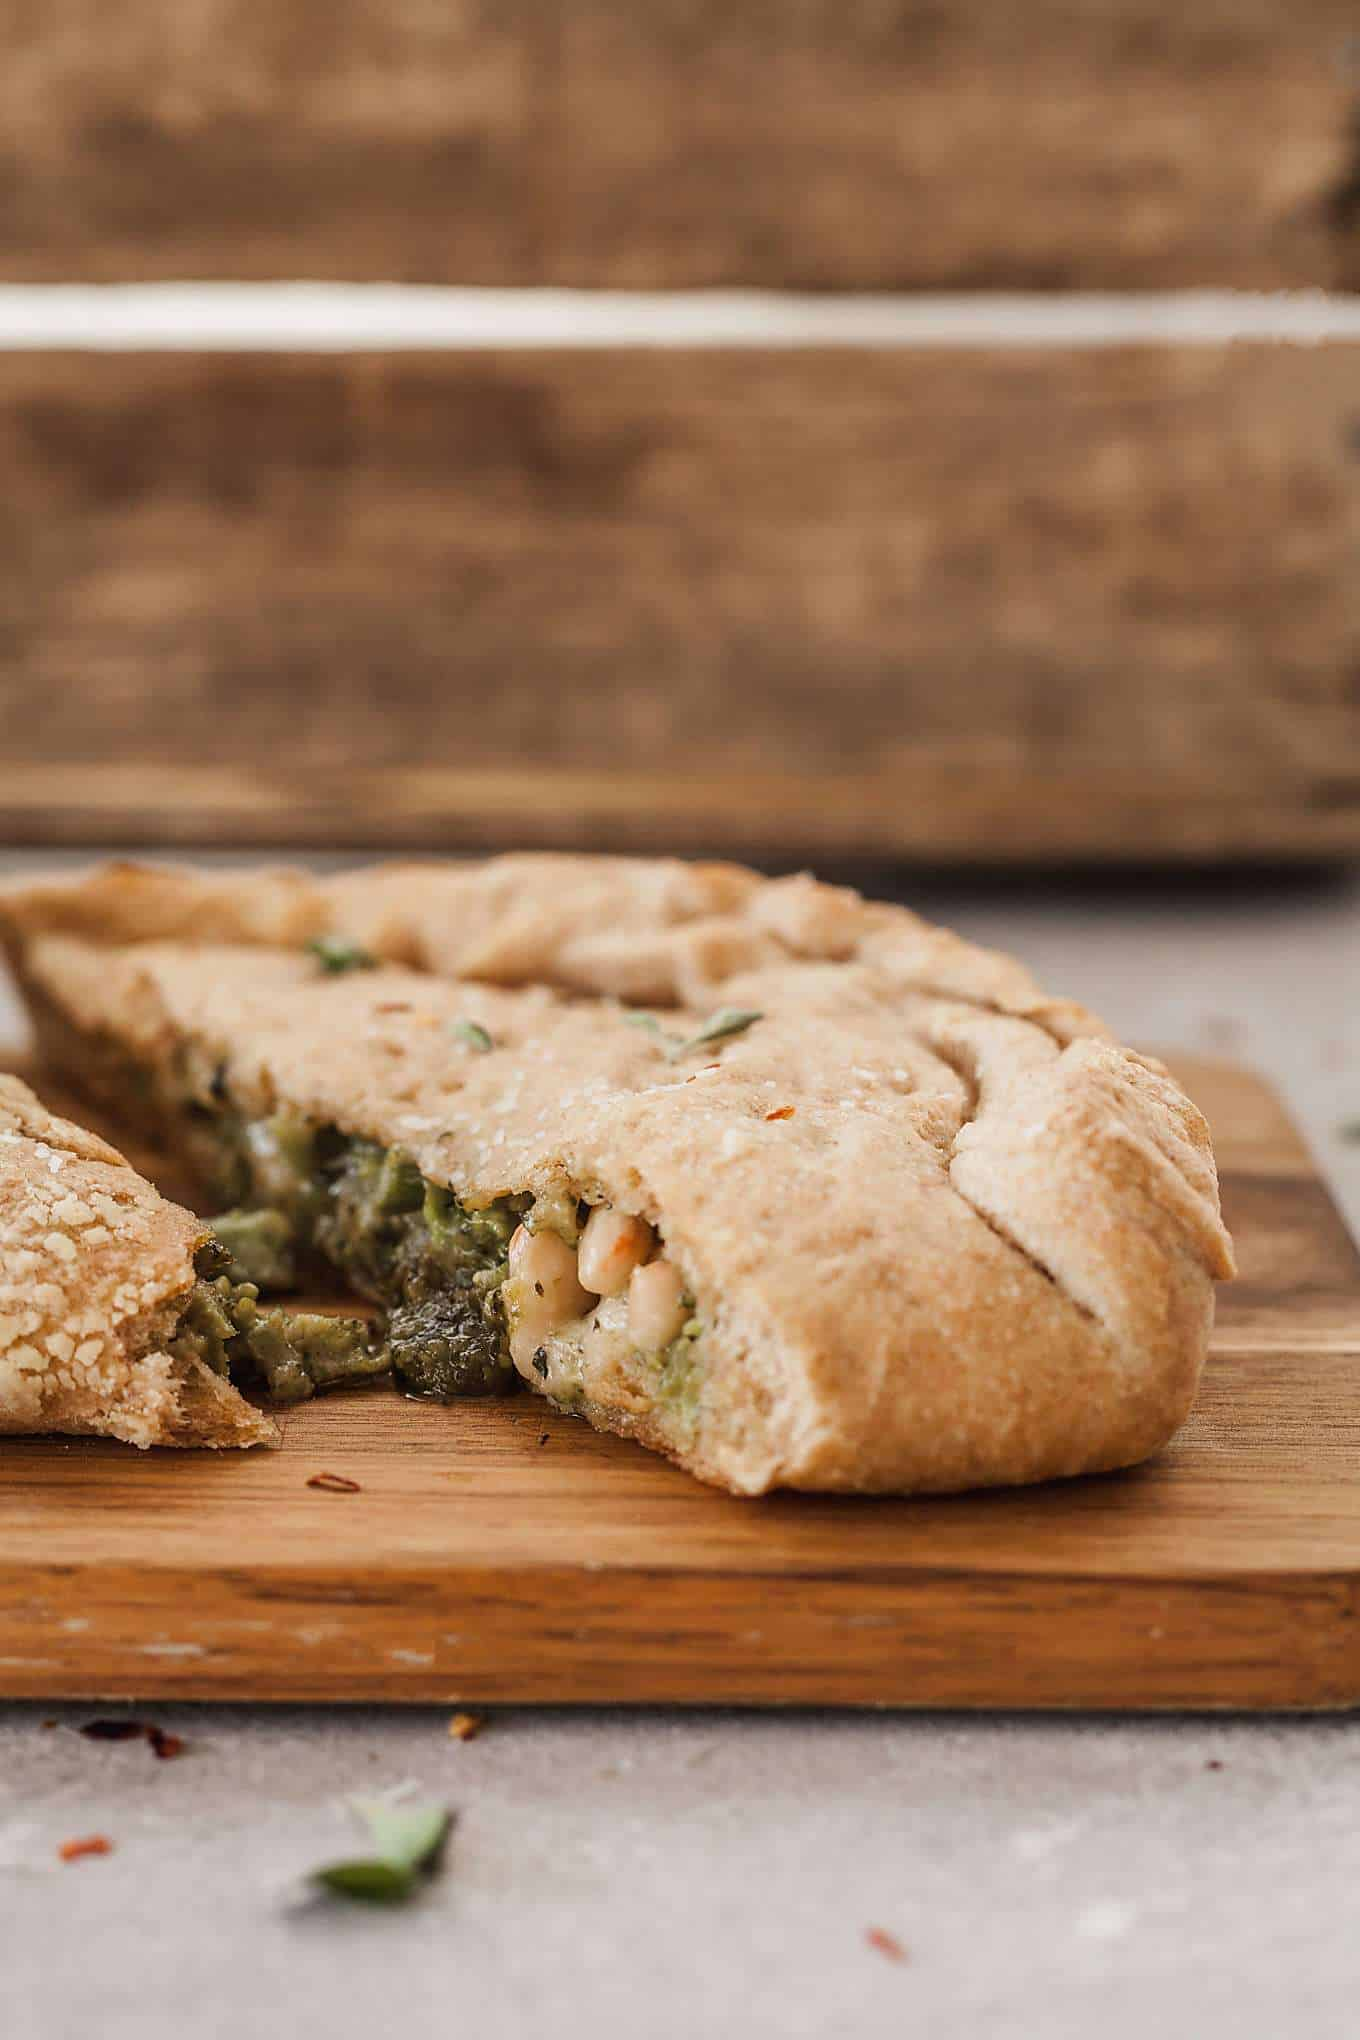 side view image of vegetarian calzone on cutting board